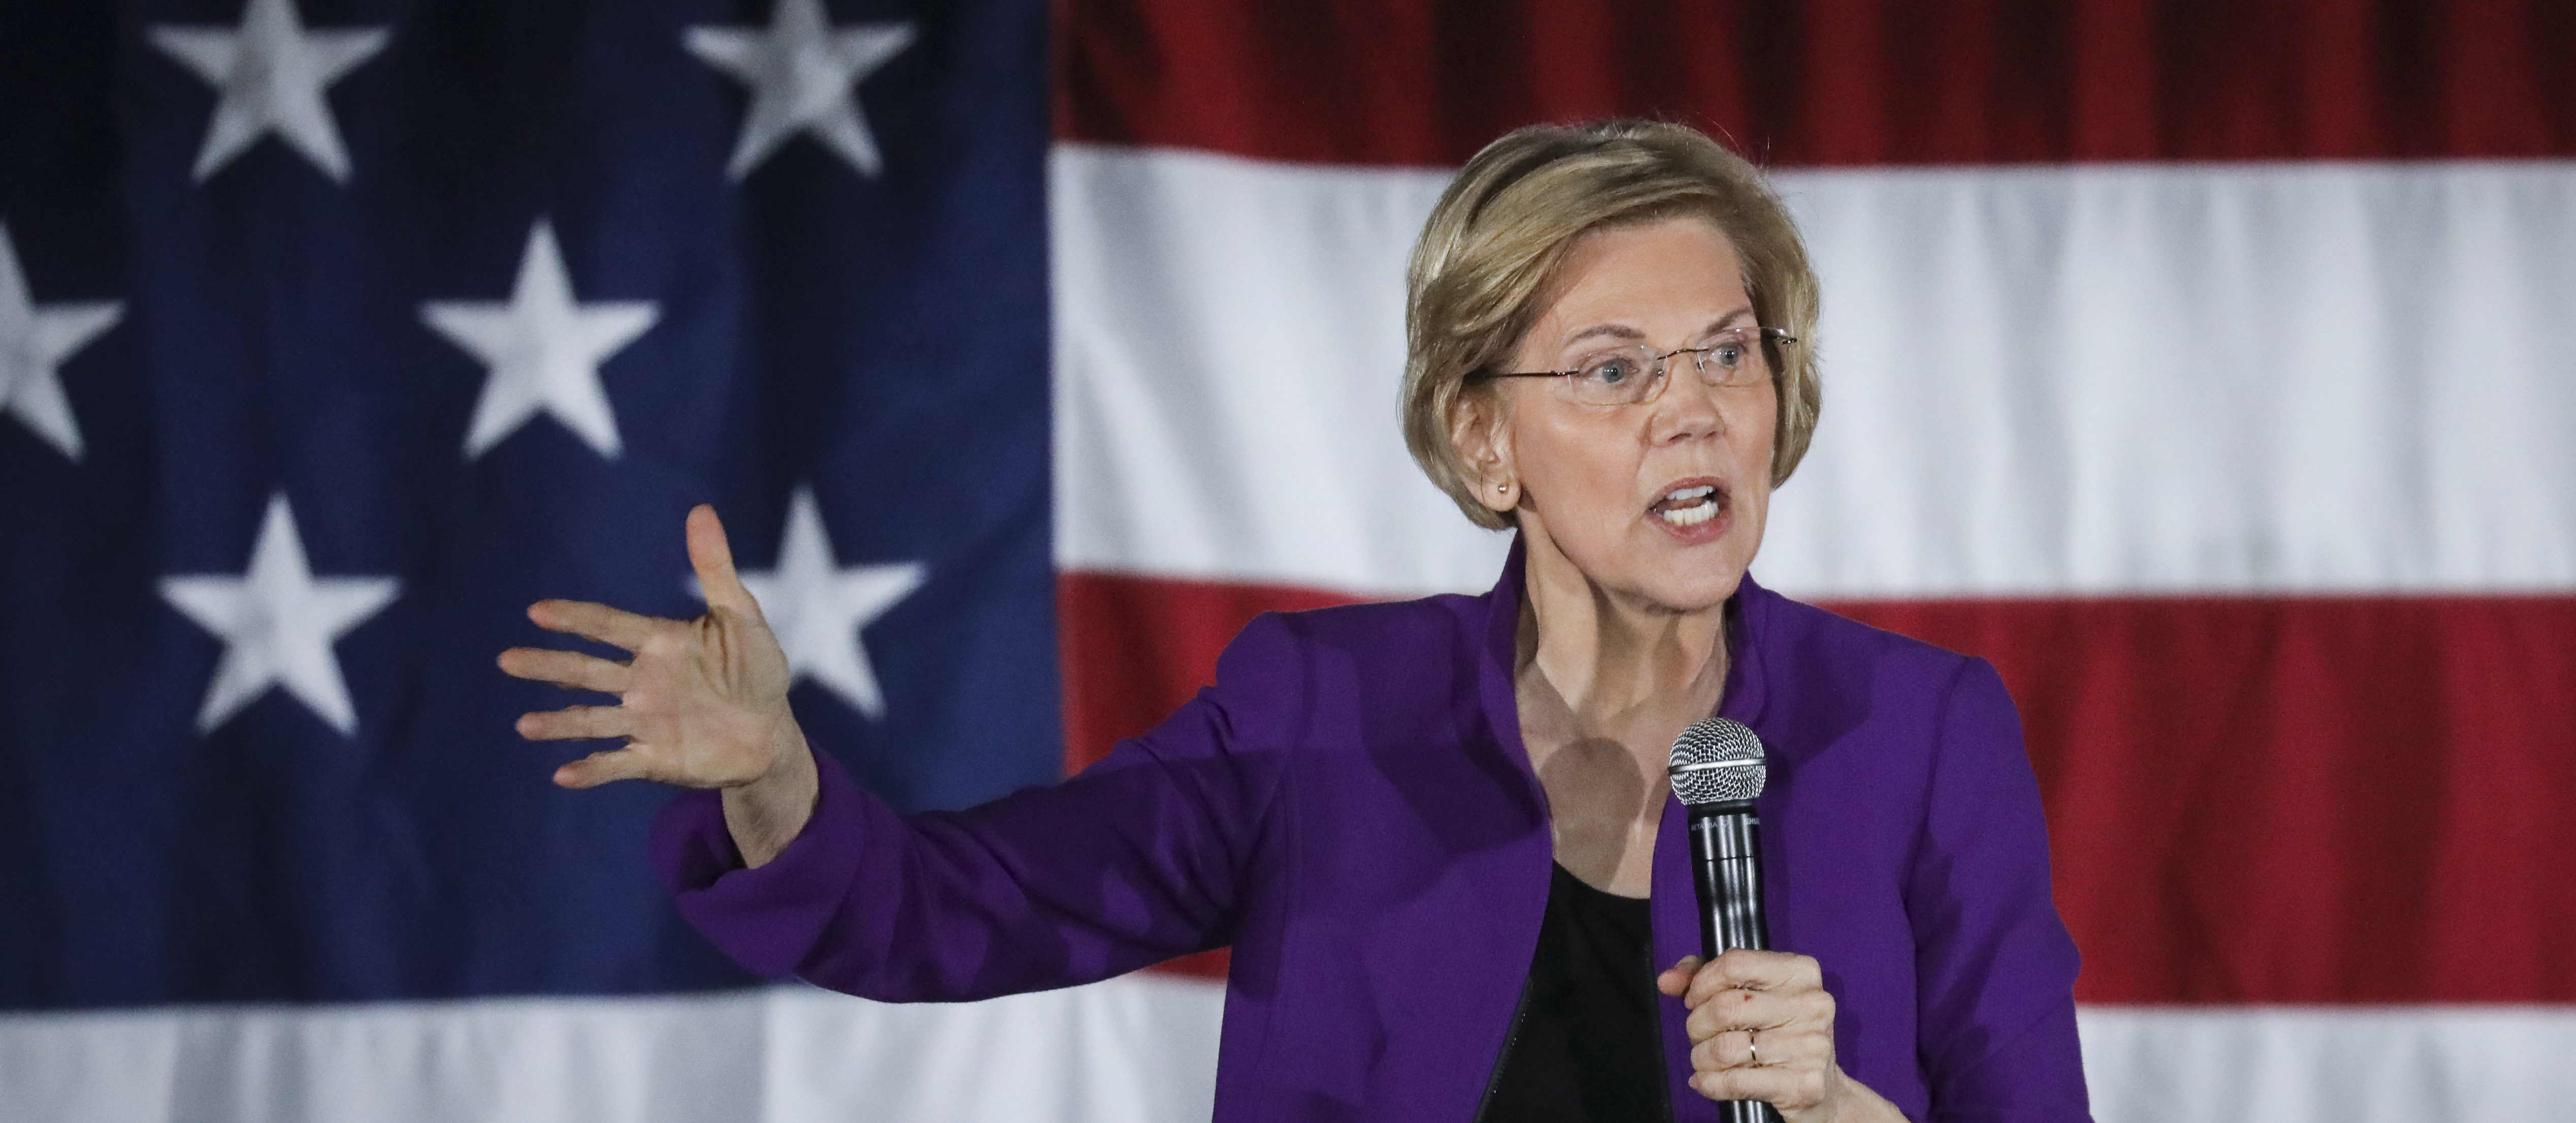 NEW YORK, NY - MARCH 08: Sen. Elizabeth Warren (D-MA), one of several Democrats running for the party's nomination in the 2020 presidential race, speaks during a campaign event, March 8, 2019 in the Queens borough of New York City. (Photo by Drew Angerer/Getty Images)